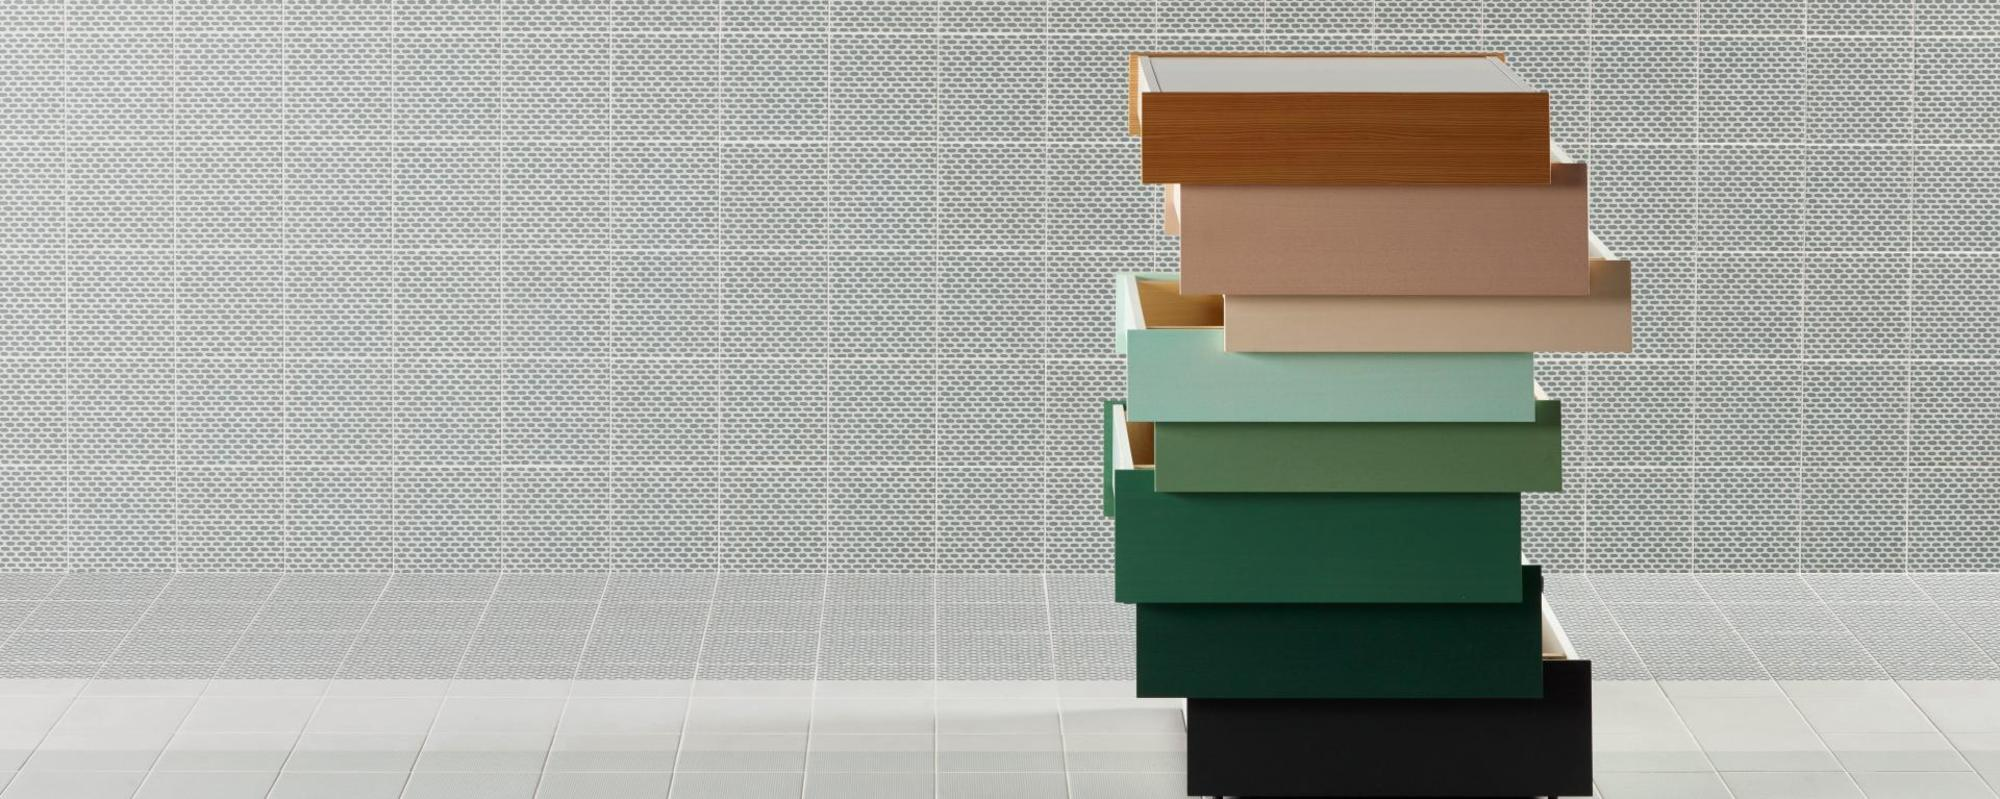 MUTINA ceramiche & design Tape Raw Edges zigzag green + zigzag half green + grainy green + grainy half green + base white + cobble half green + cobble green